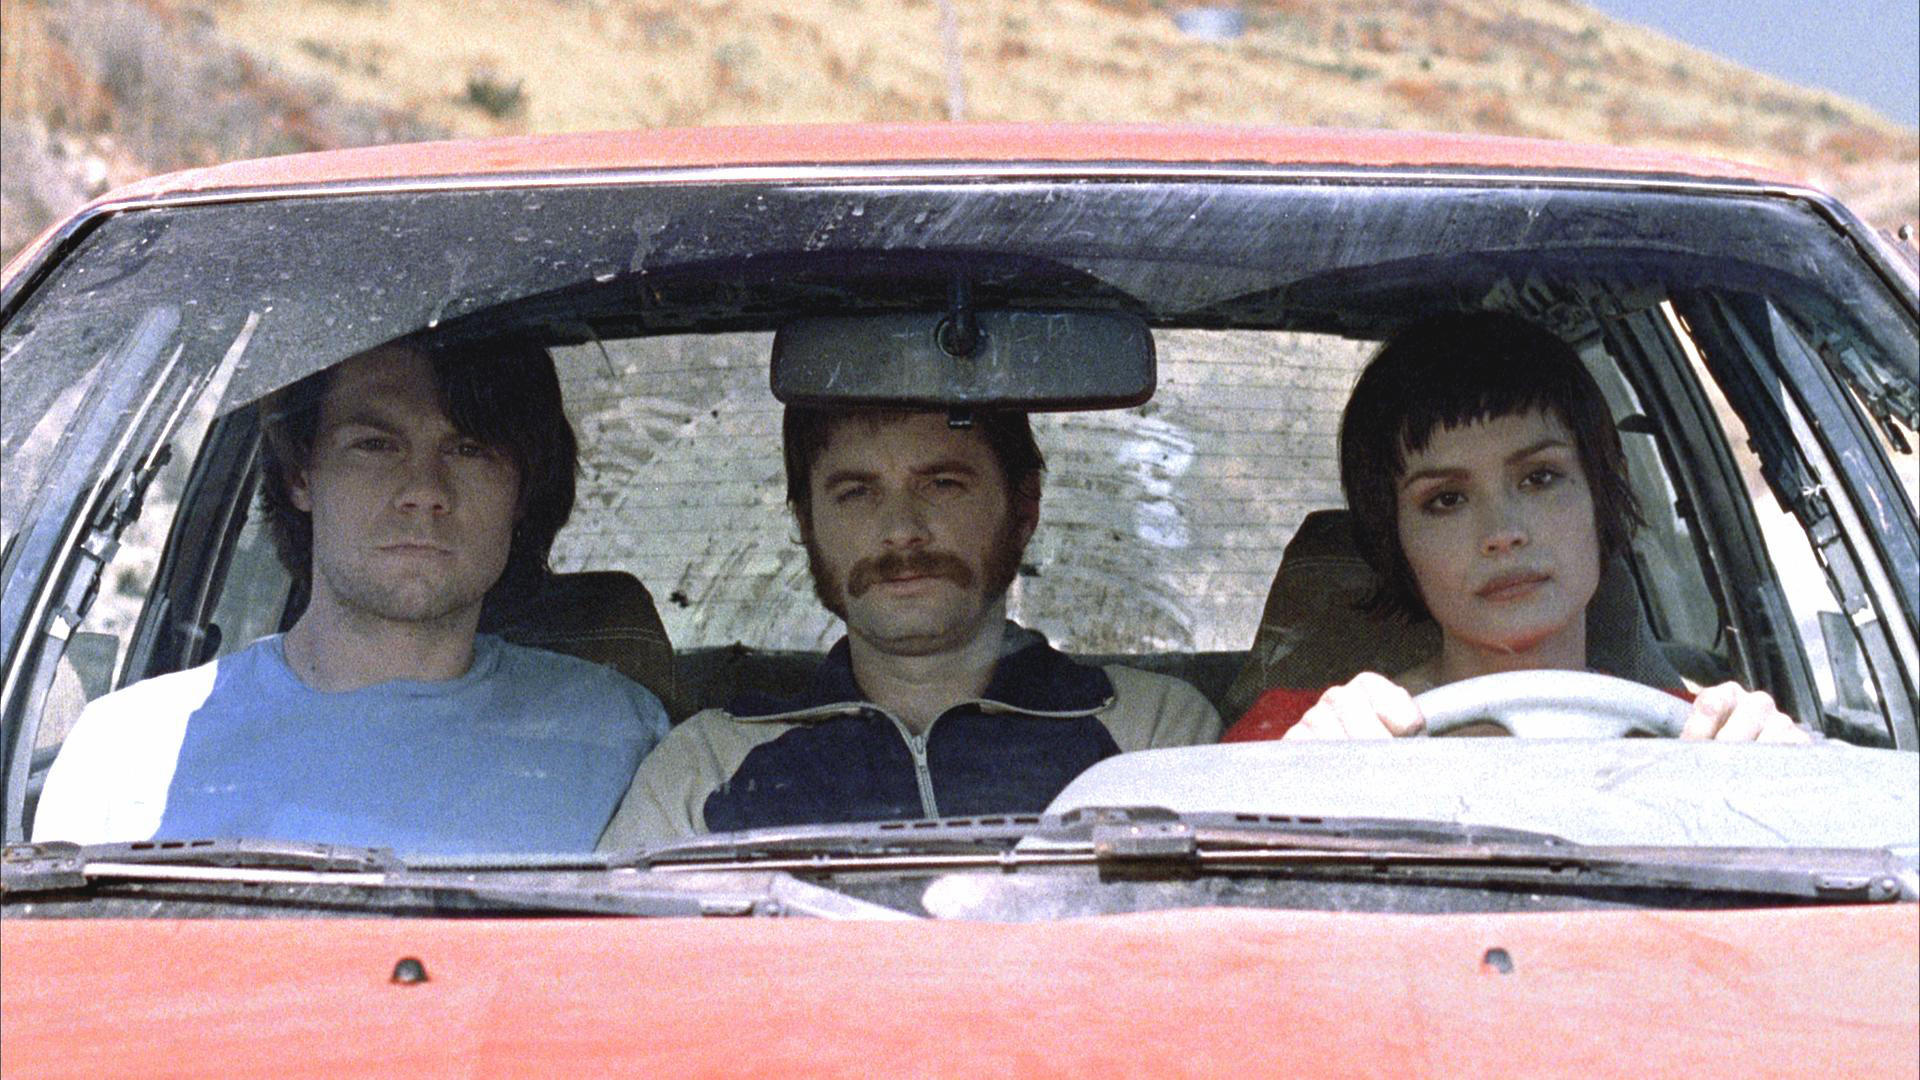 On a road trip through the afterlife - (l to r) Patrick Fugit, Shea Whigman, Shannyn Sossamon in Wristcutters: A Love Story (2006)